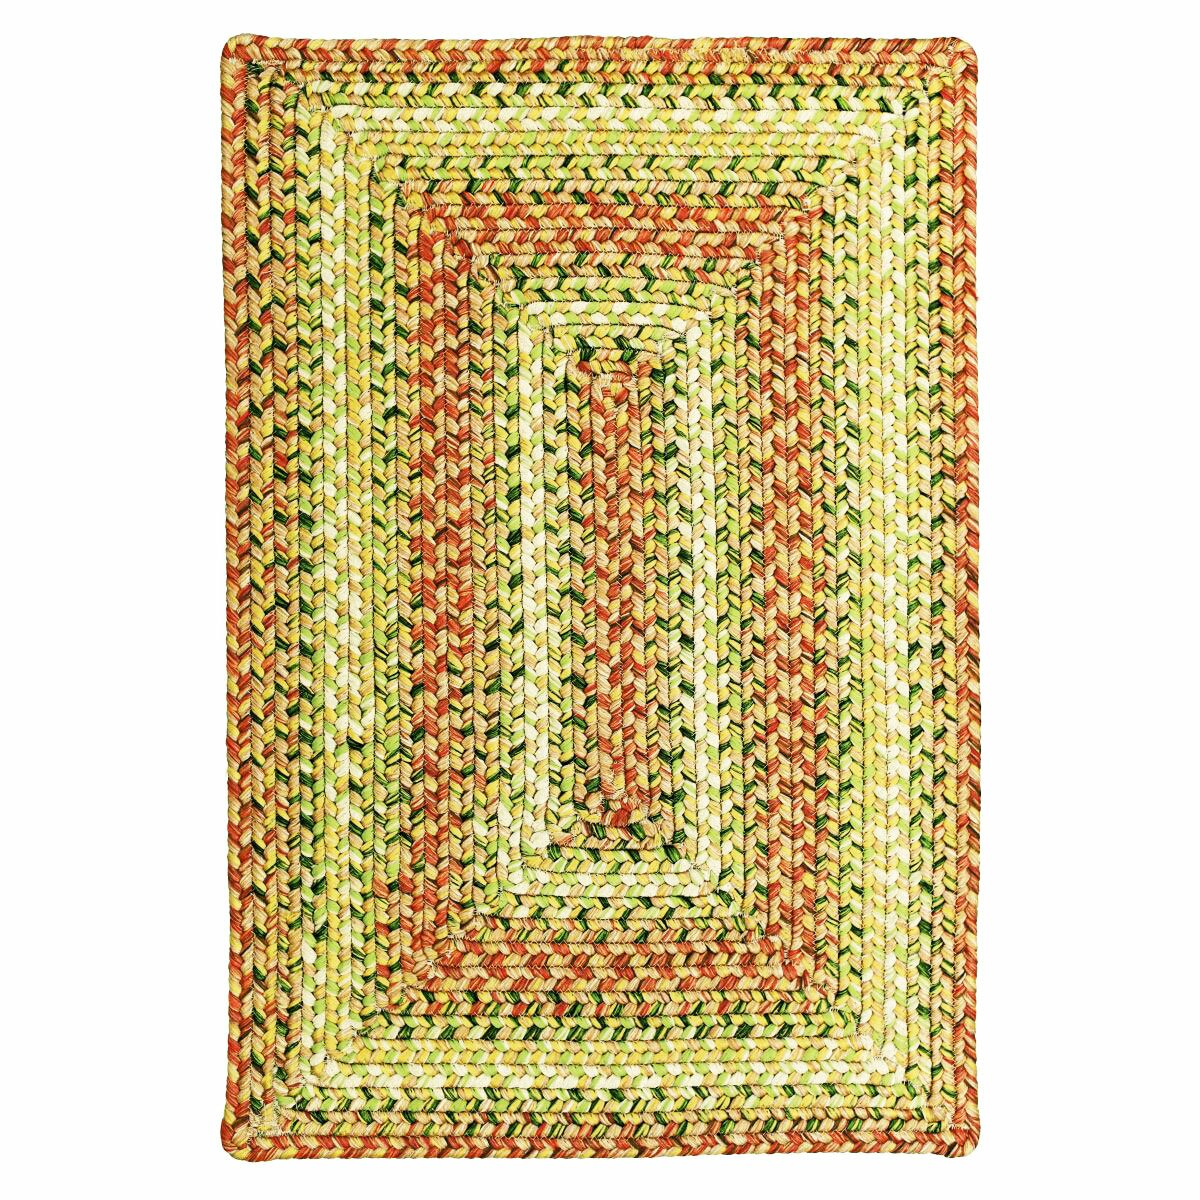 Homespice Decor Ultra-Durable Tuscany Indoor/Outdoor Rug